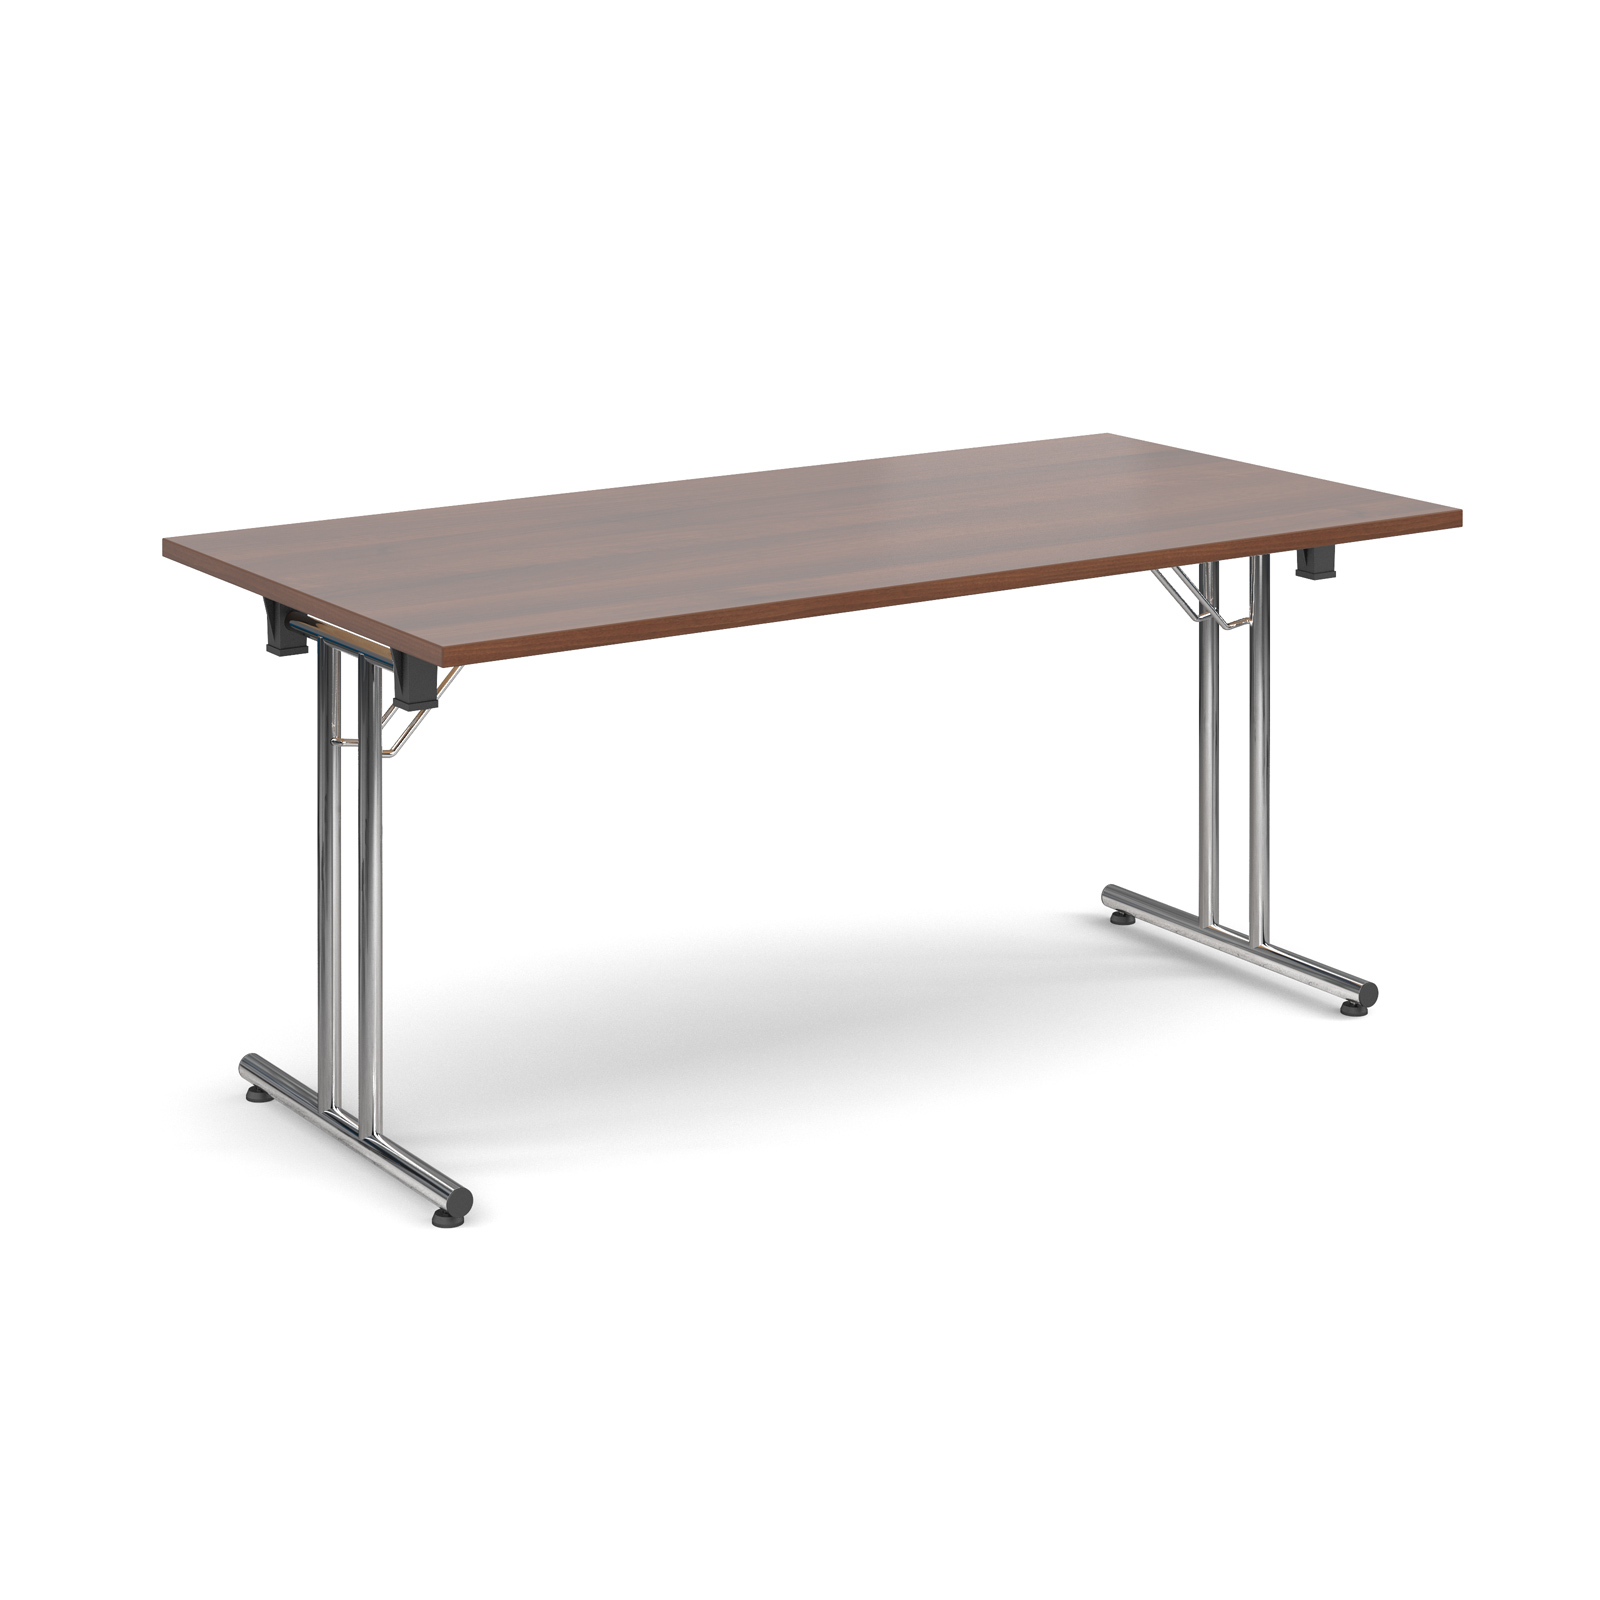 Rectangular deluxe folding leg table 1600mm x 800mm - walnut